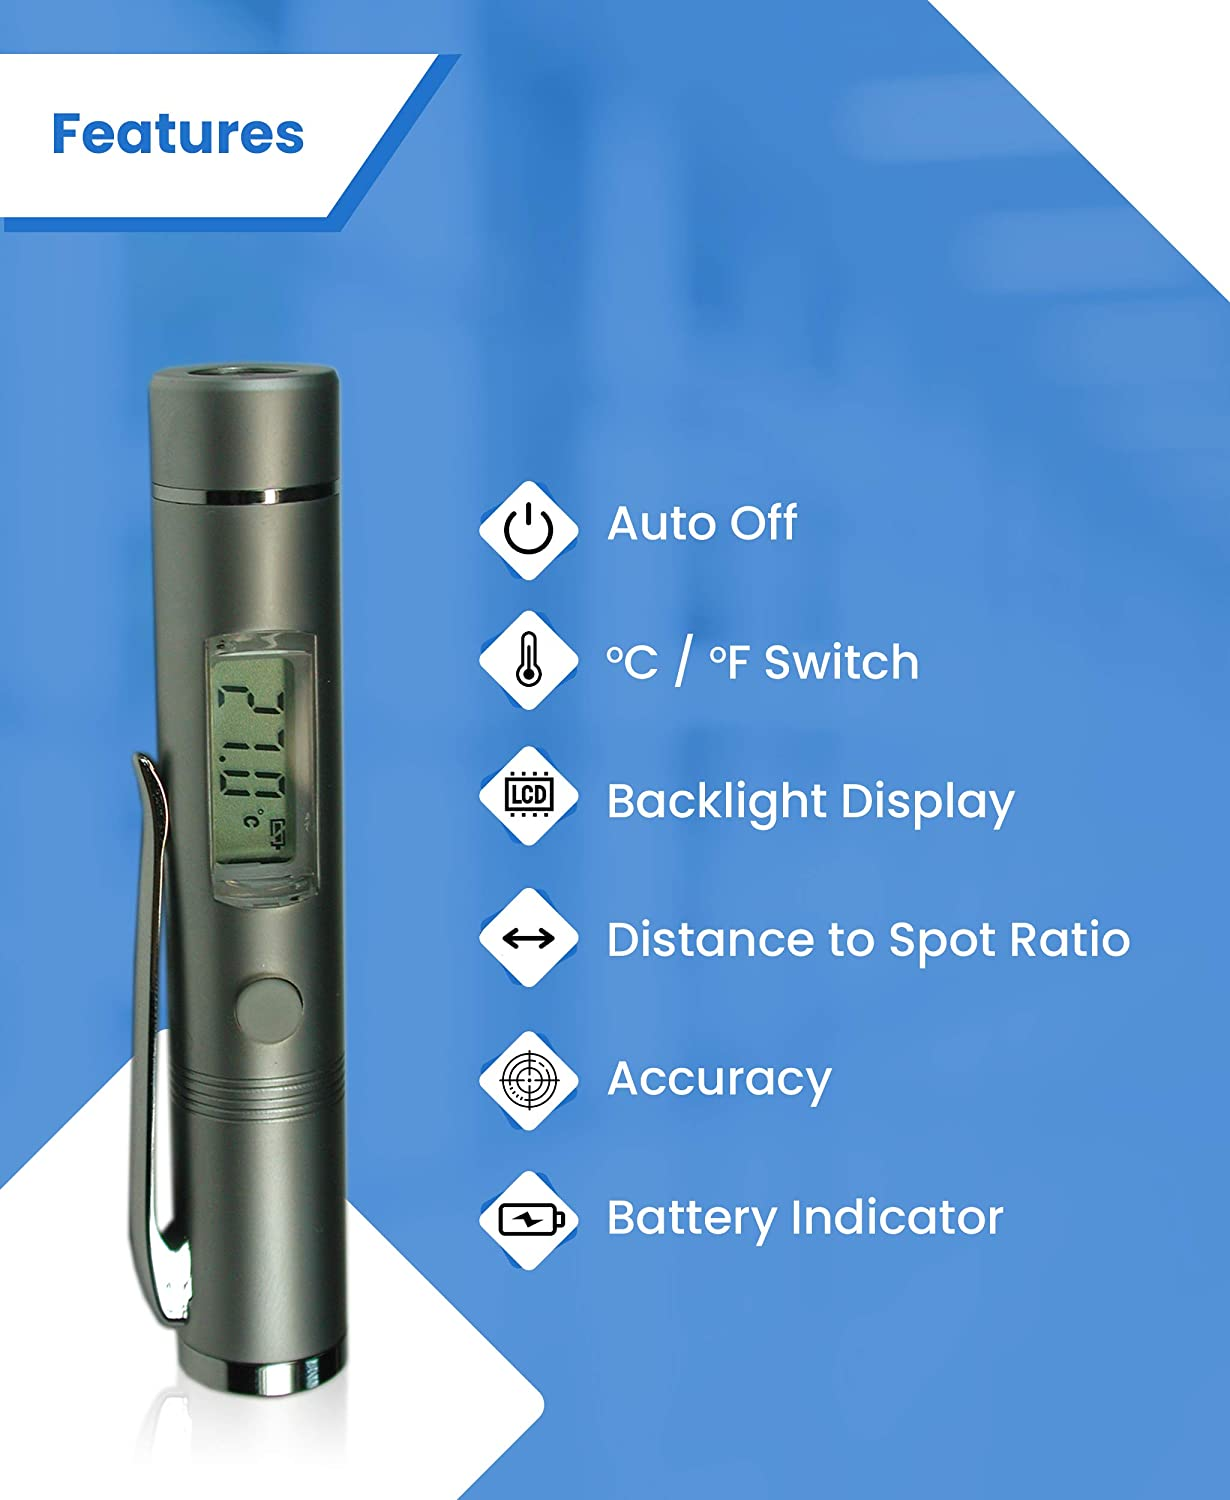 27o to 428o F 1:1 D:S Ratio Small -33o to 230o C Inside Car Metris Instruments Model TN002PC Non-Contact Mini Digital Laser Infrared Thermometer Professional-Grade- // Test Temp of Sand Coffee